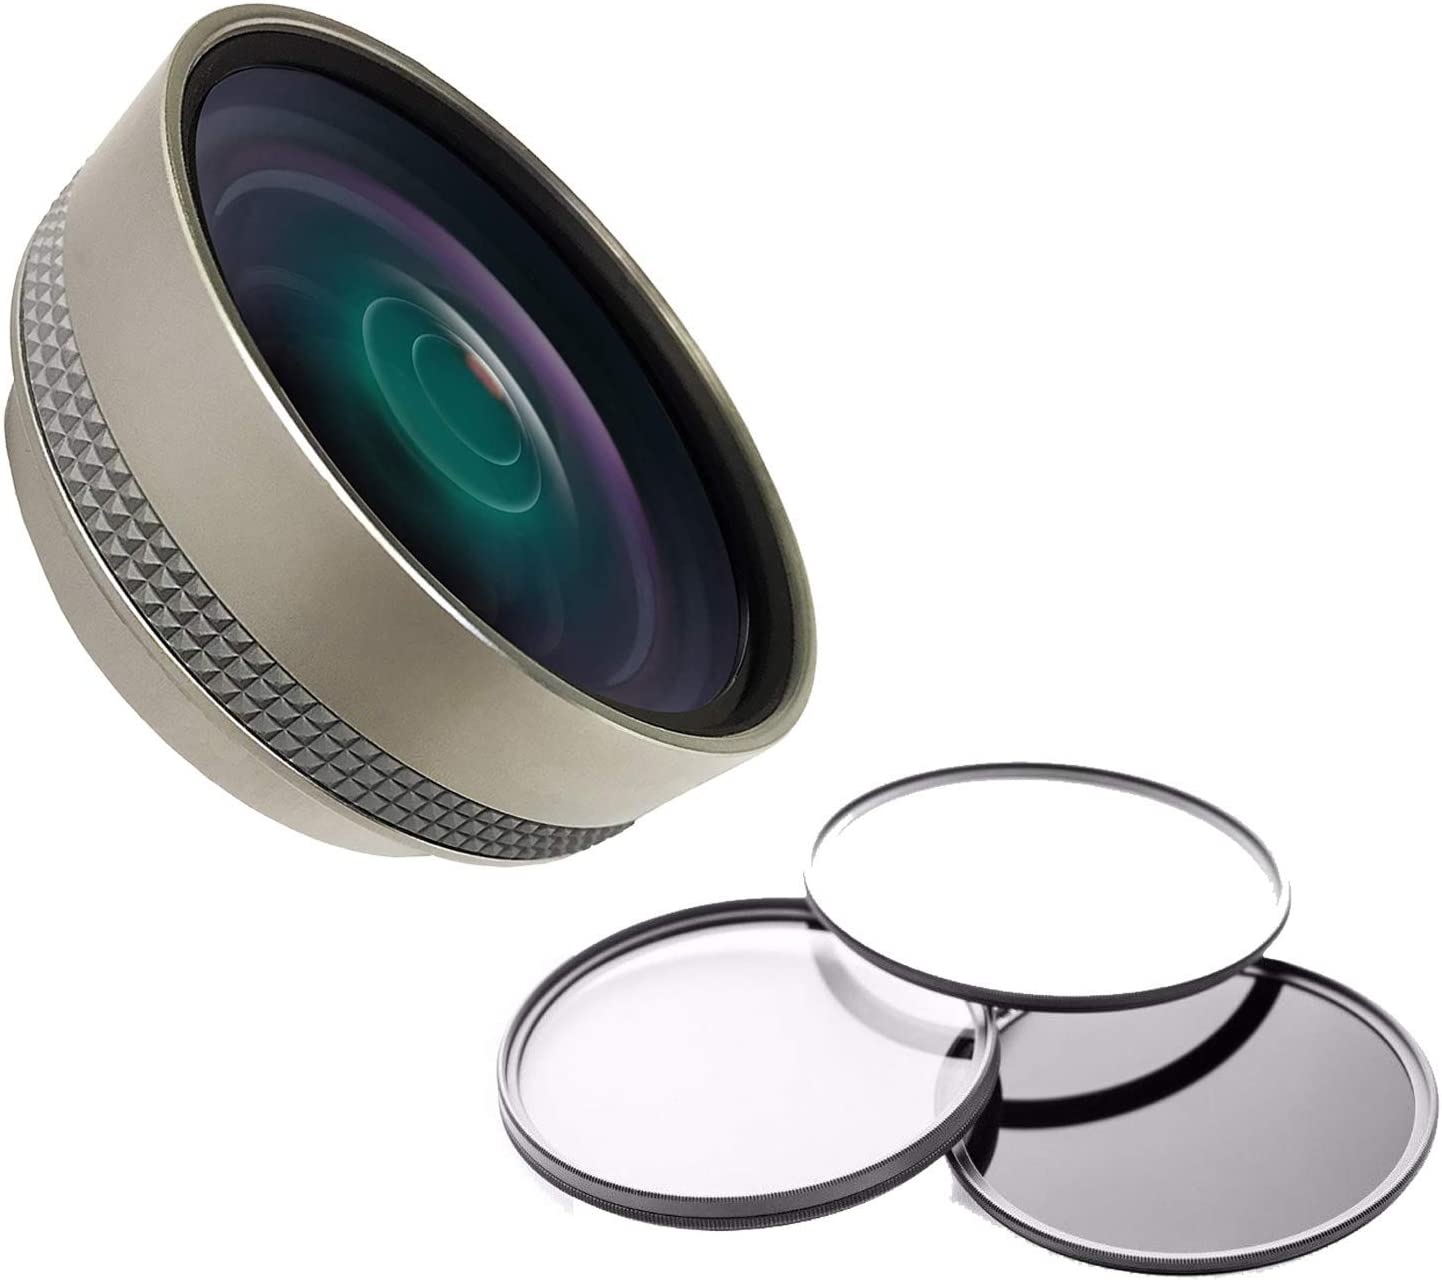 Includes Lens Adapter 58mm 3 Piece Filter Kit 0.4X High Definition Super Wide Angle Lens w//Macro for Fujifilm FinePix S9800